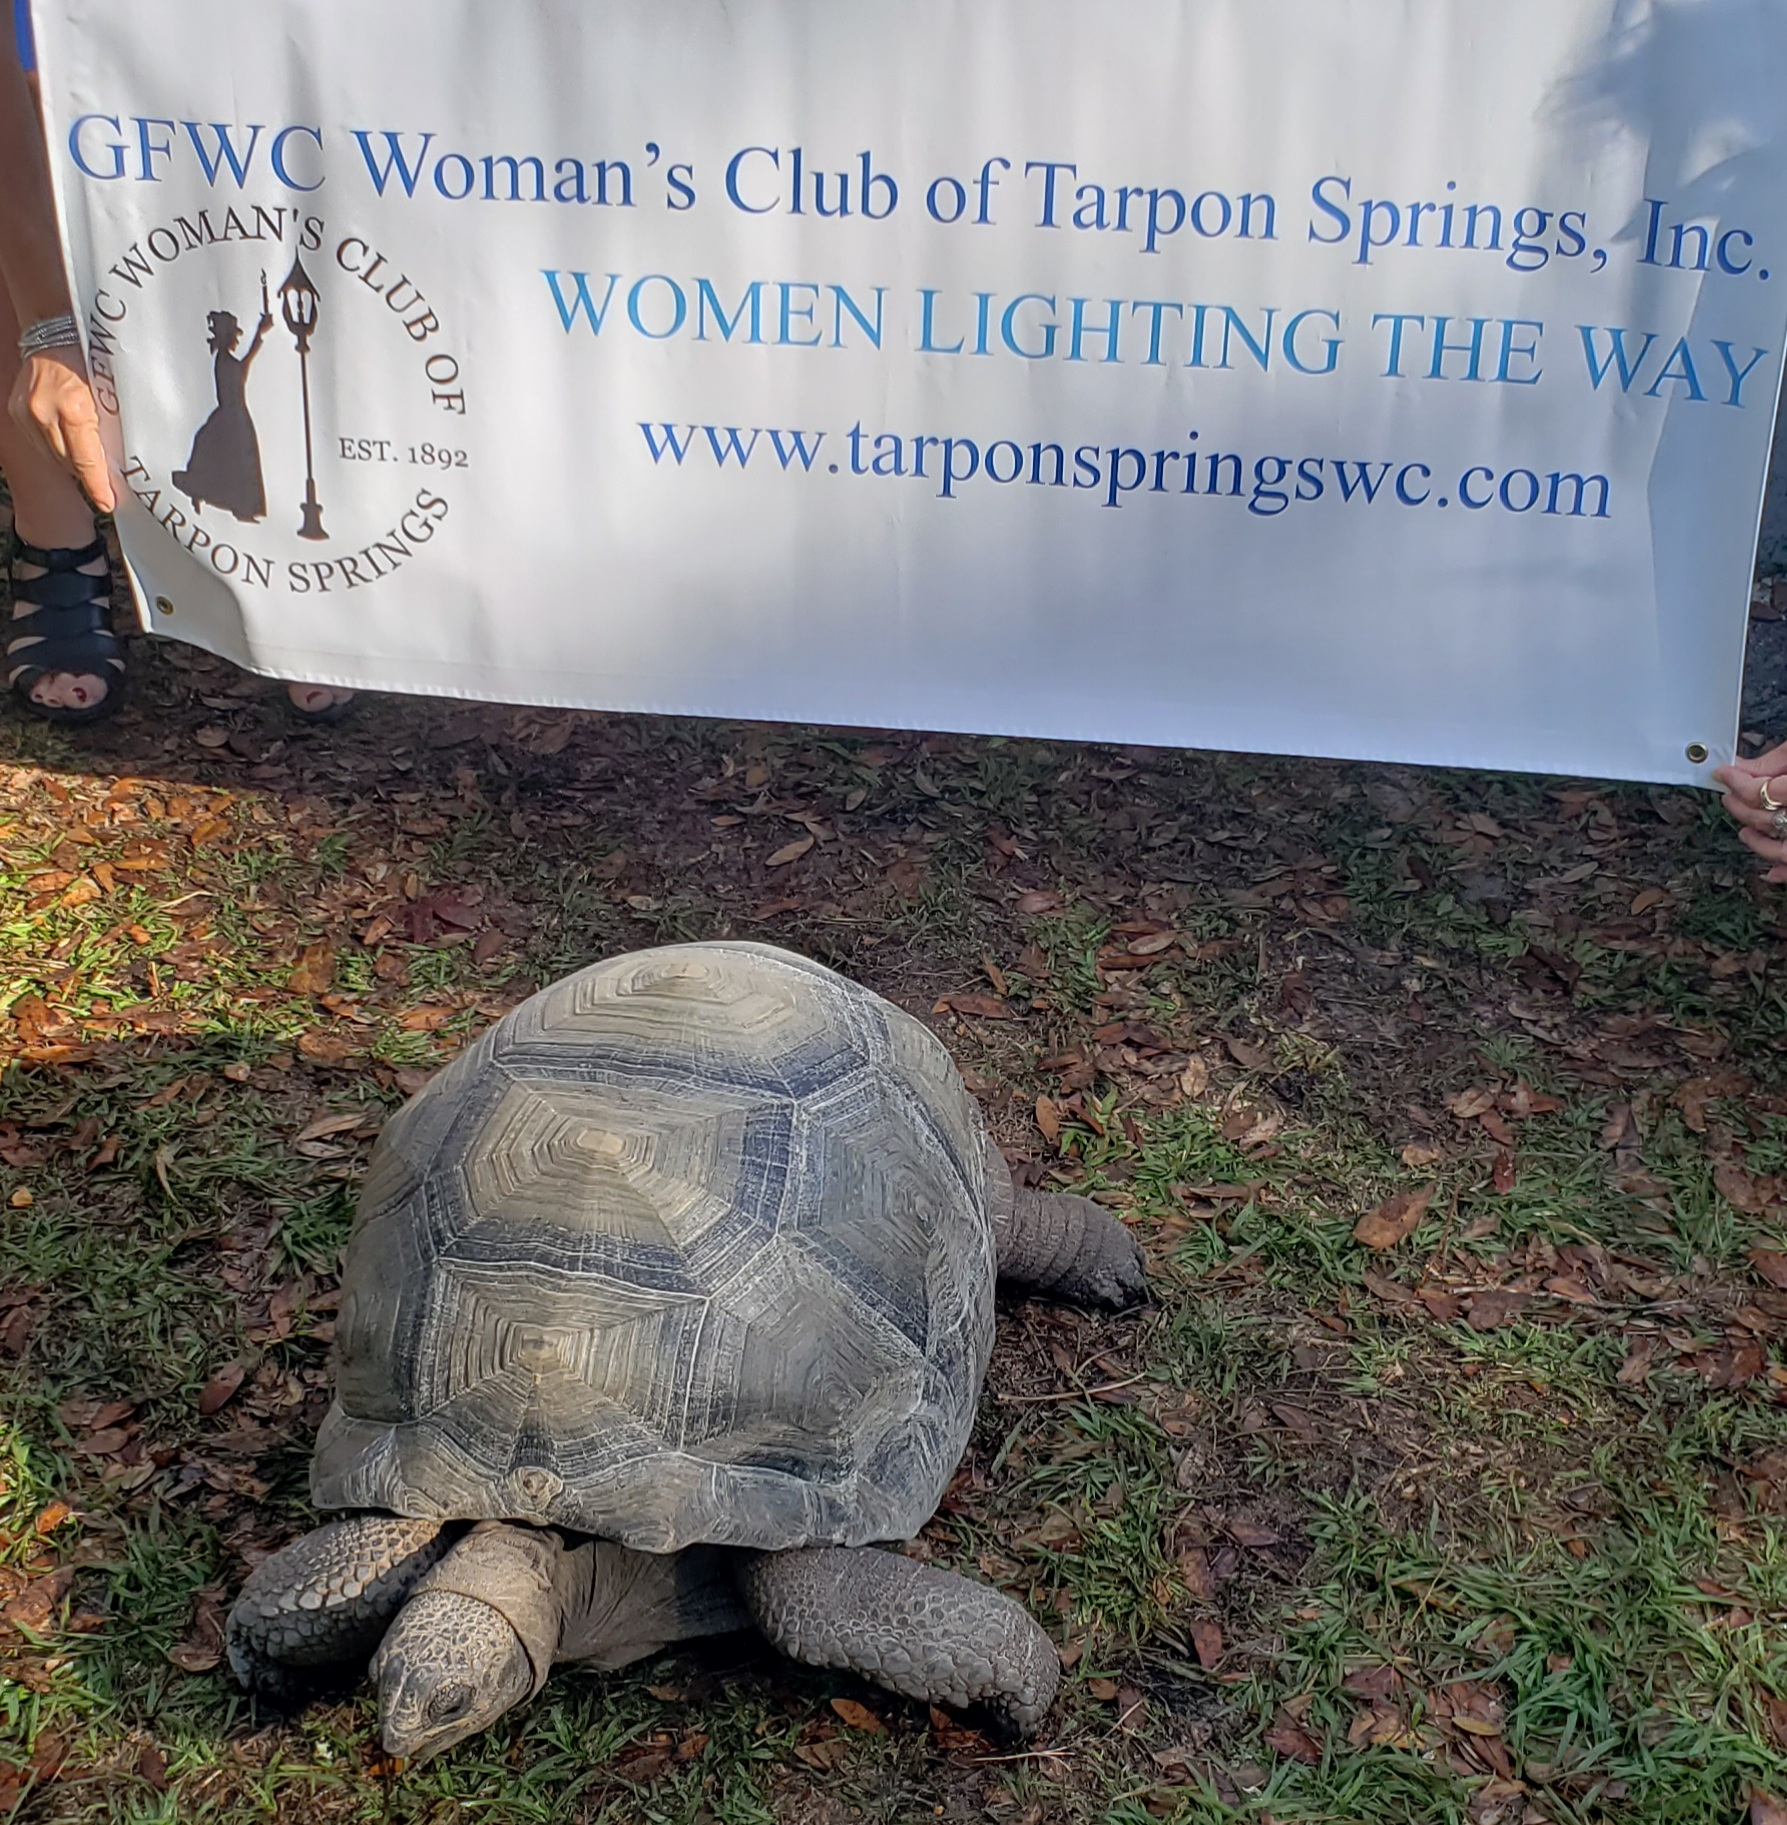 Pebbles, the 25 lb. Aldabra tortoise that our Club adopted from the Tarpon Springs Aquarium & Animal Sanctuary.